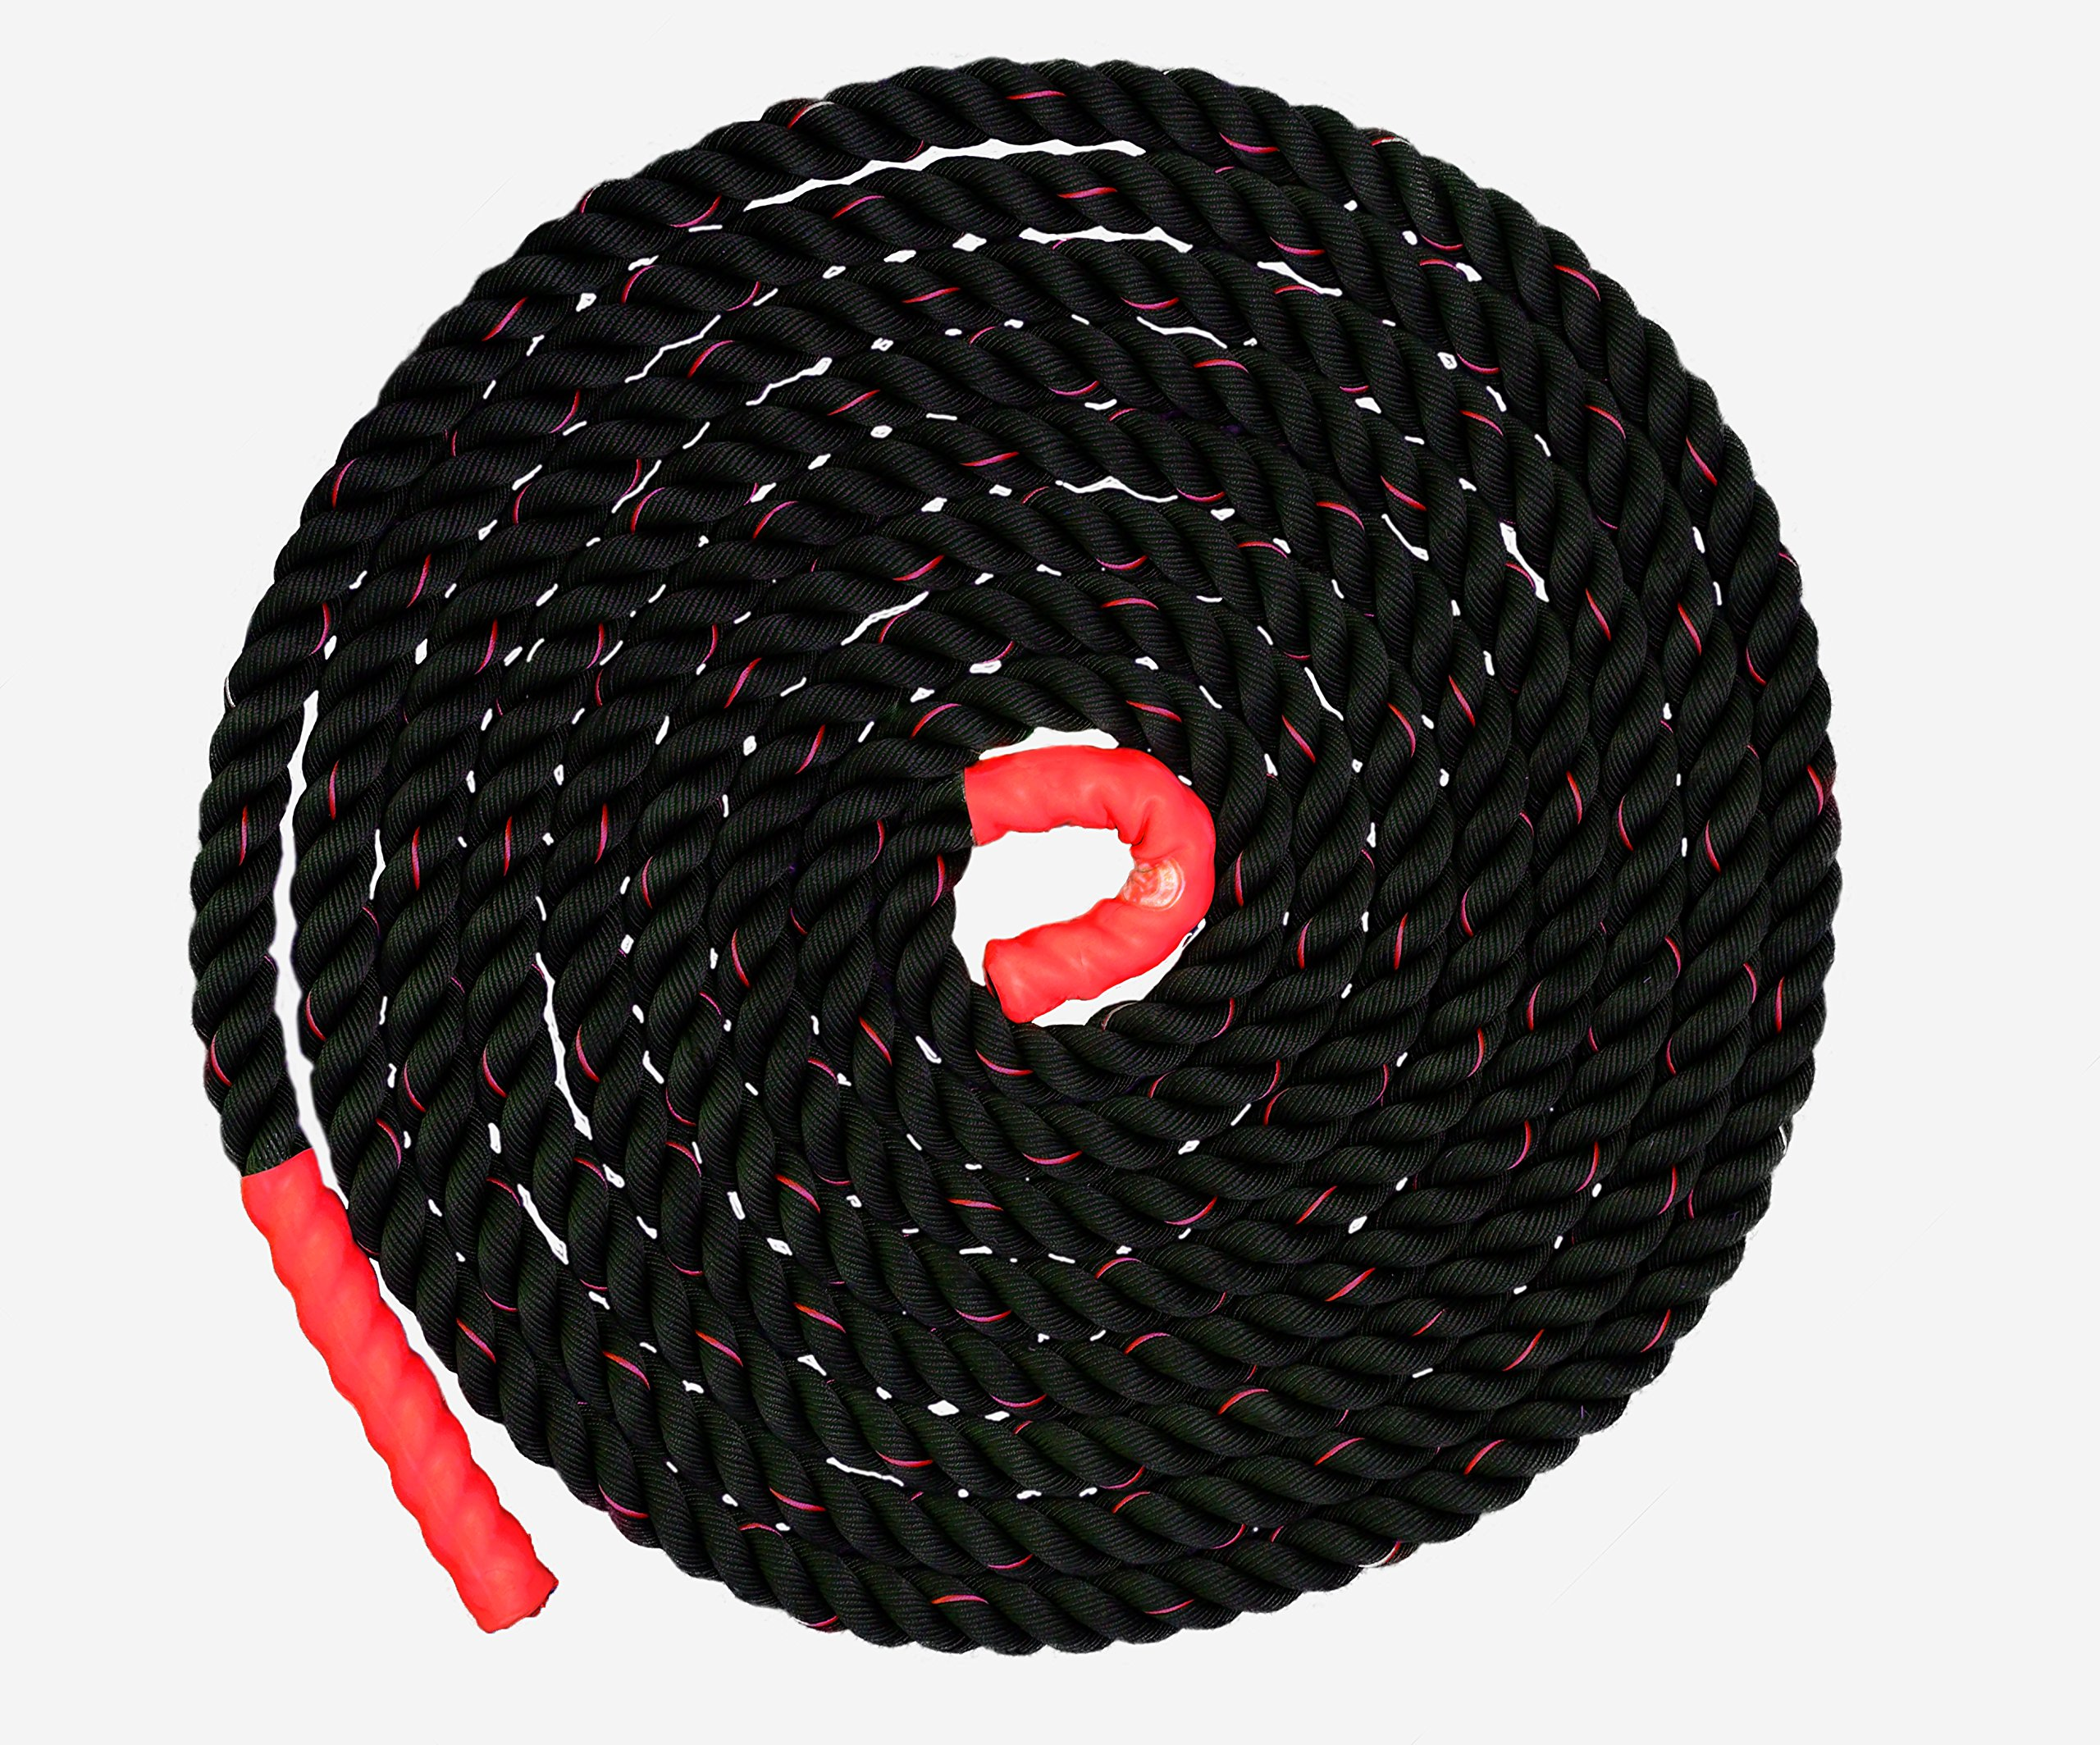 Battle Ropes Exercise Rope | Heavy Battle Rope for Crossfit Equipment | 40' x 1.5'' Gym Rope by Fitness Answered Training by Fitness Answered Training (Image #5)